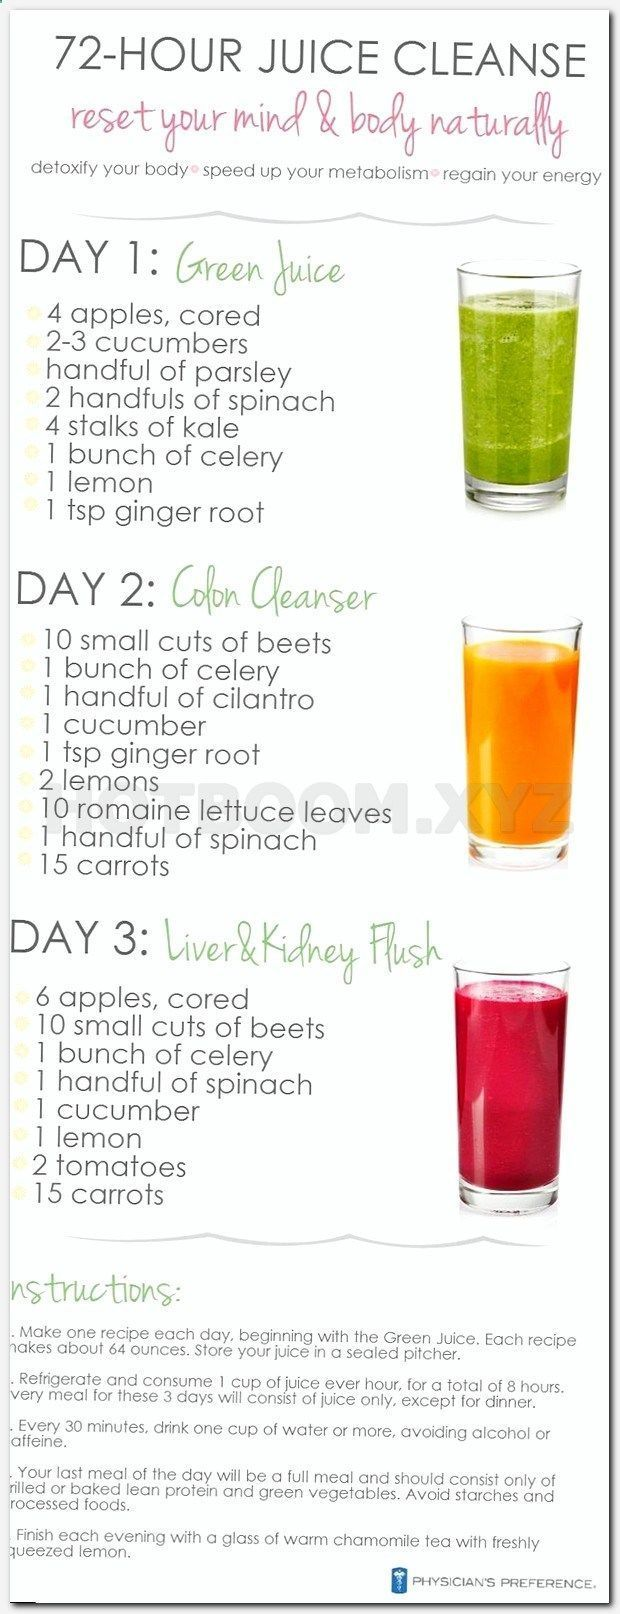 Meat veggie diet weight loss image 10